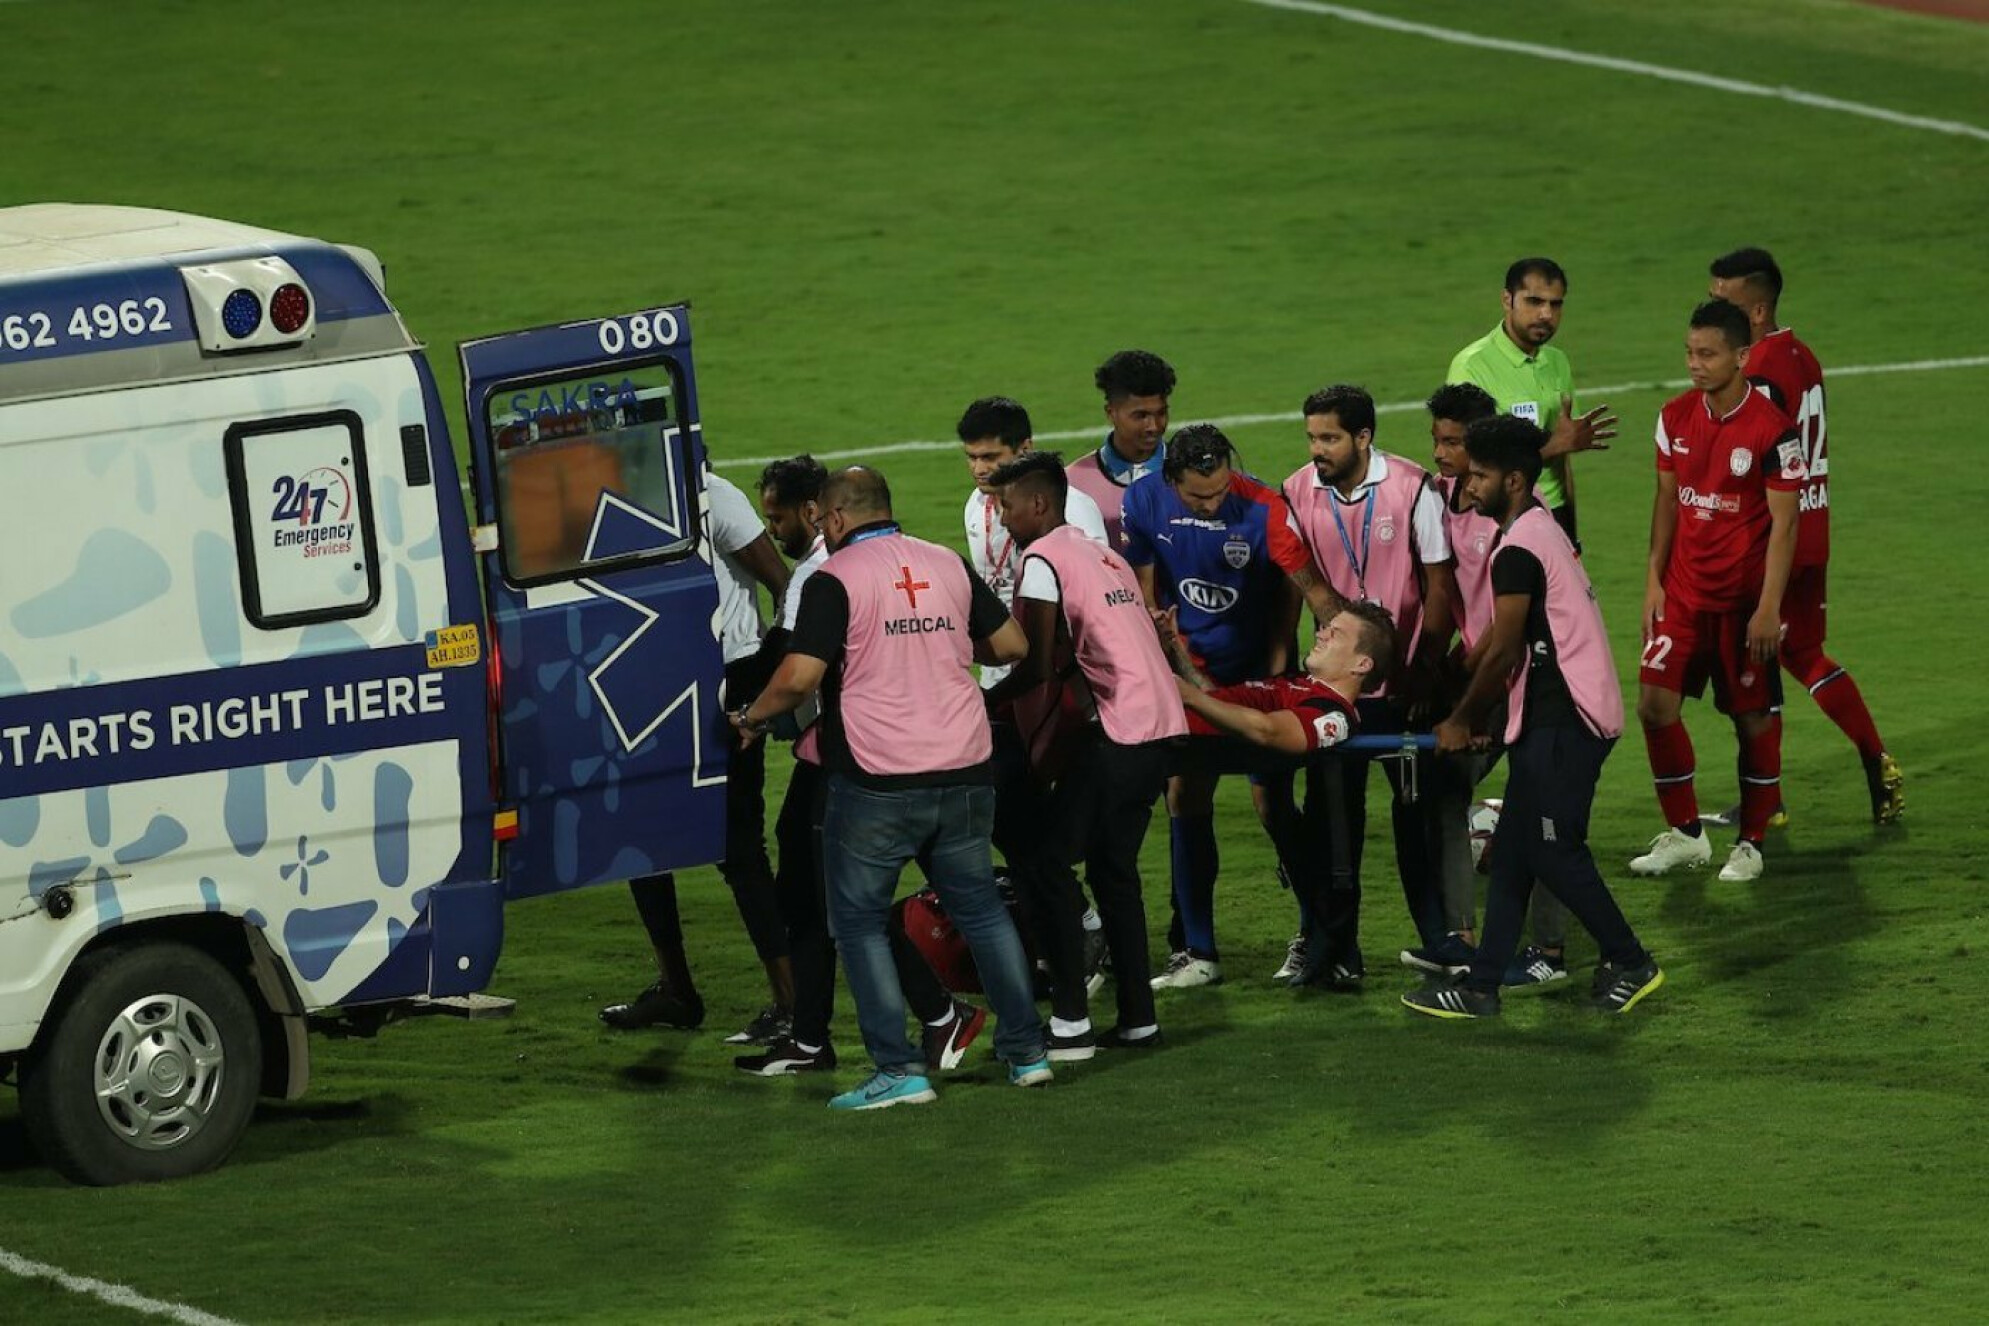 Federico Gallego sustains multiple fractures, wishes pour in for the Uruguayan midfielder.